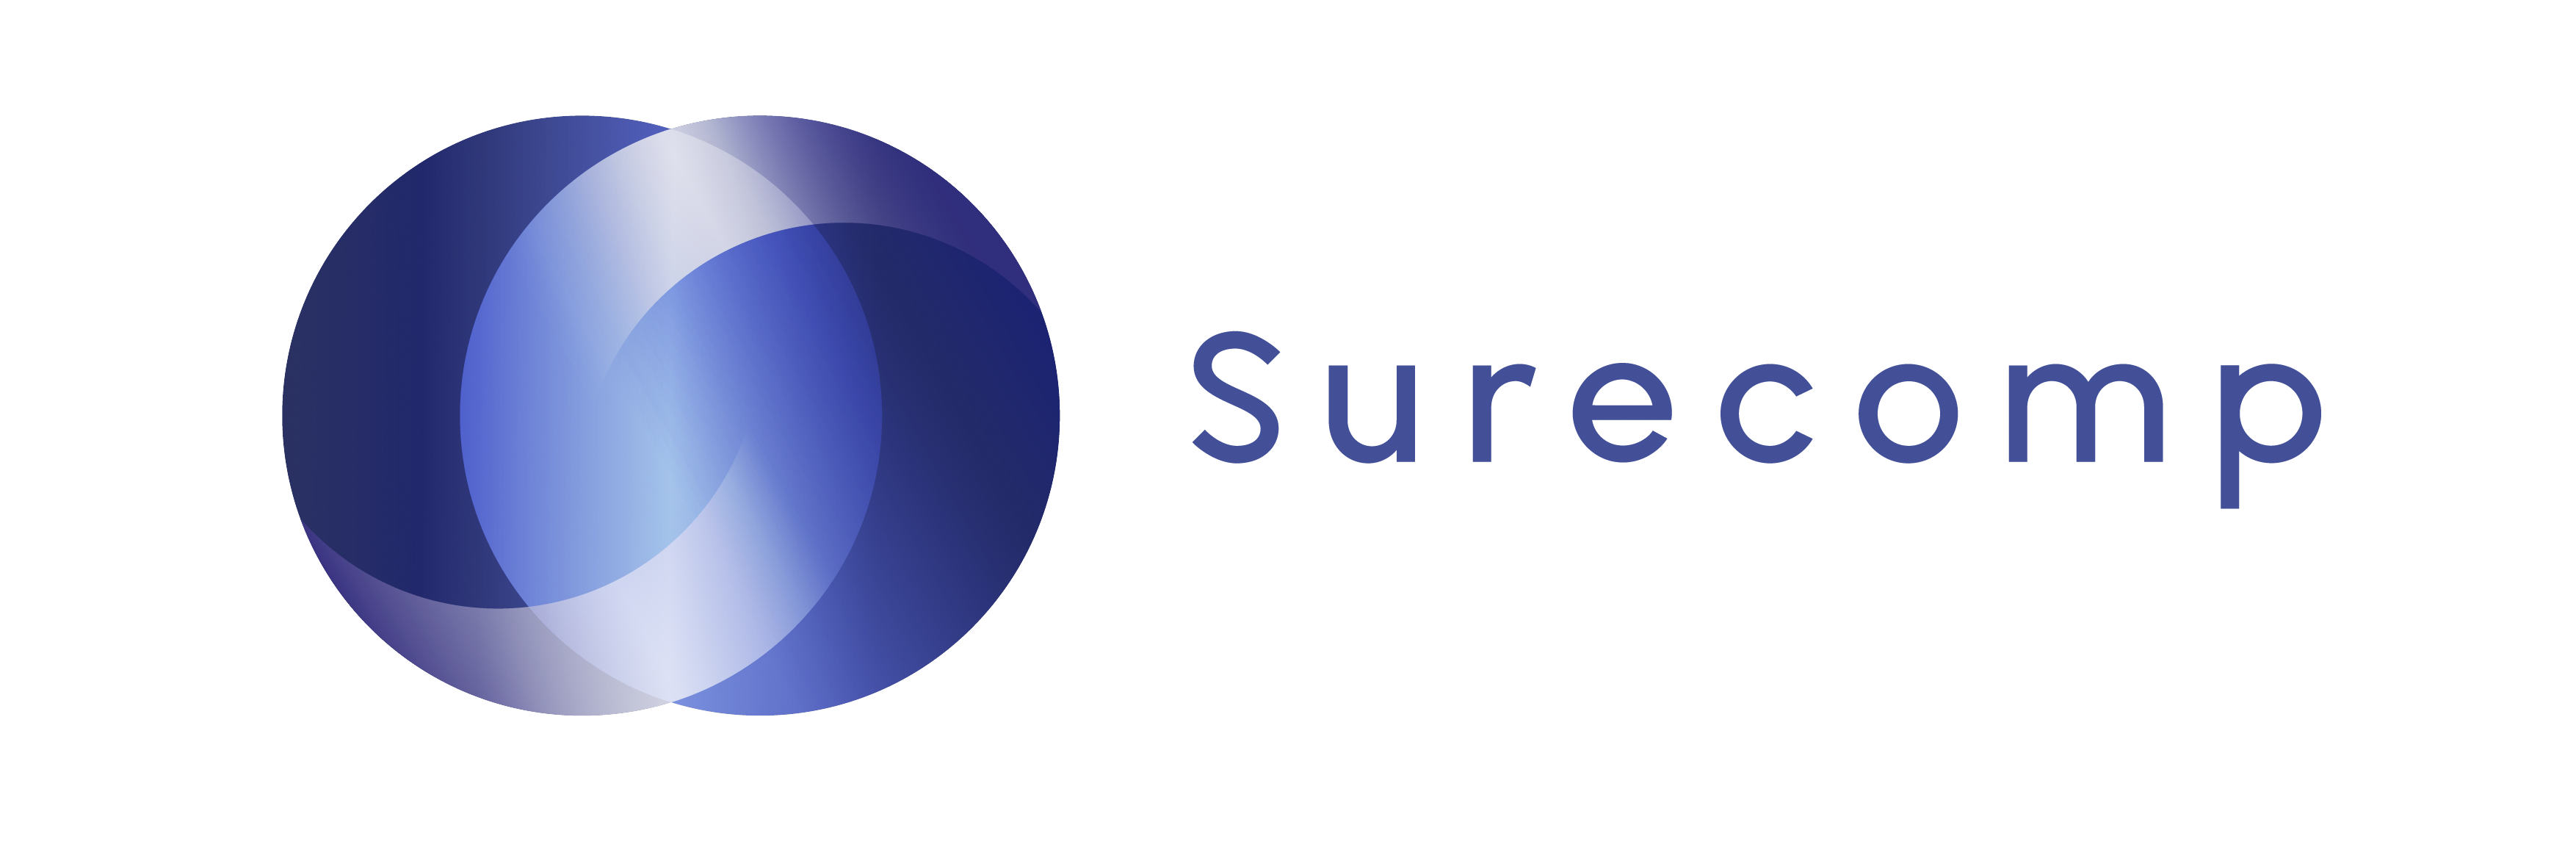 Surecomp to Automate Front-Office Trade and Treasury Management for Puente